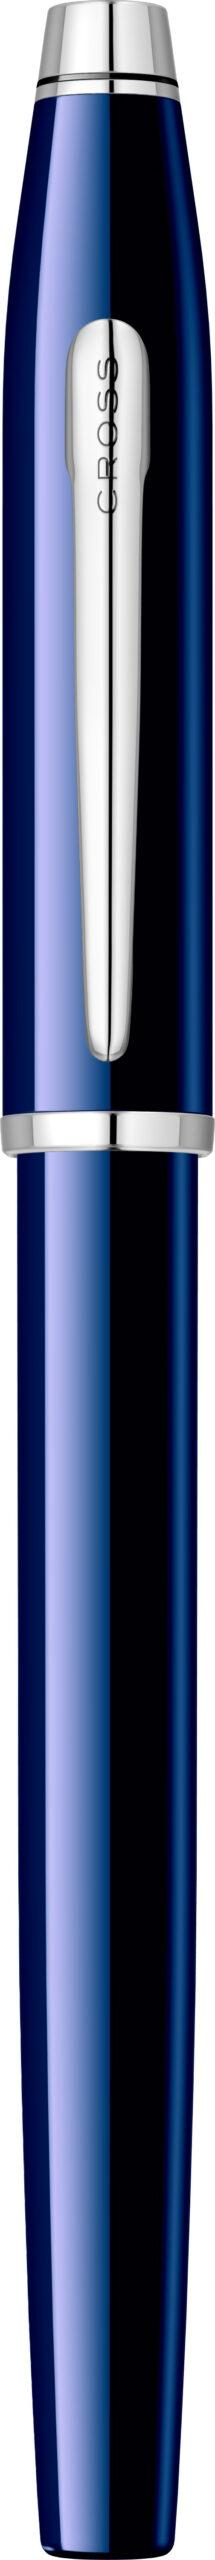 Translucent Blue Lacquer RT Roller - Cross 4